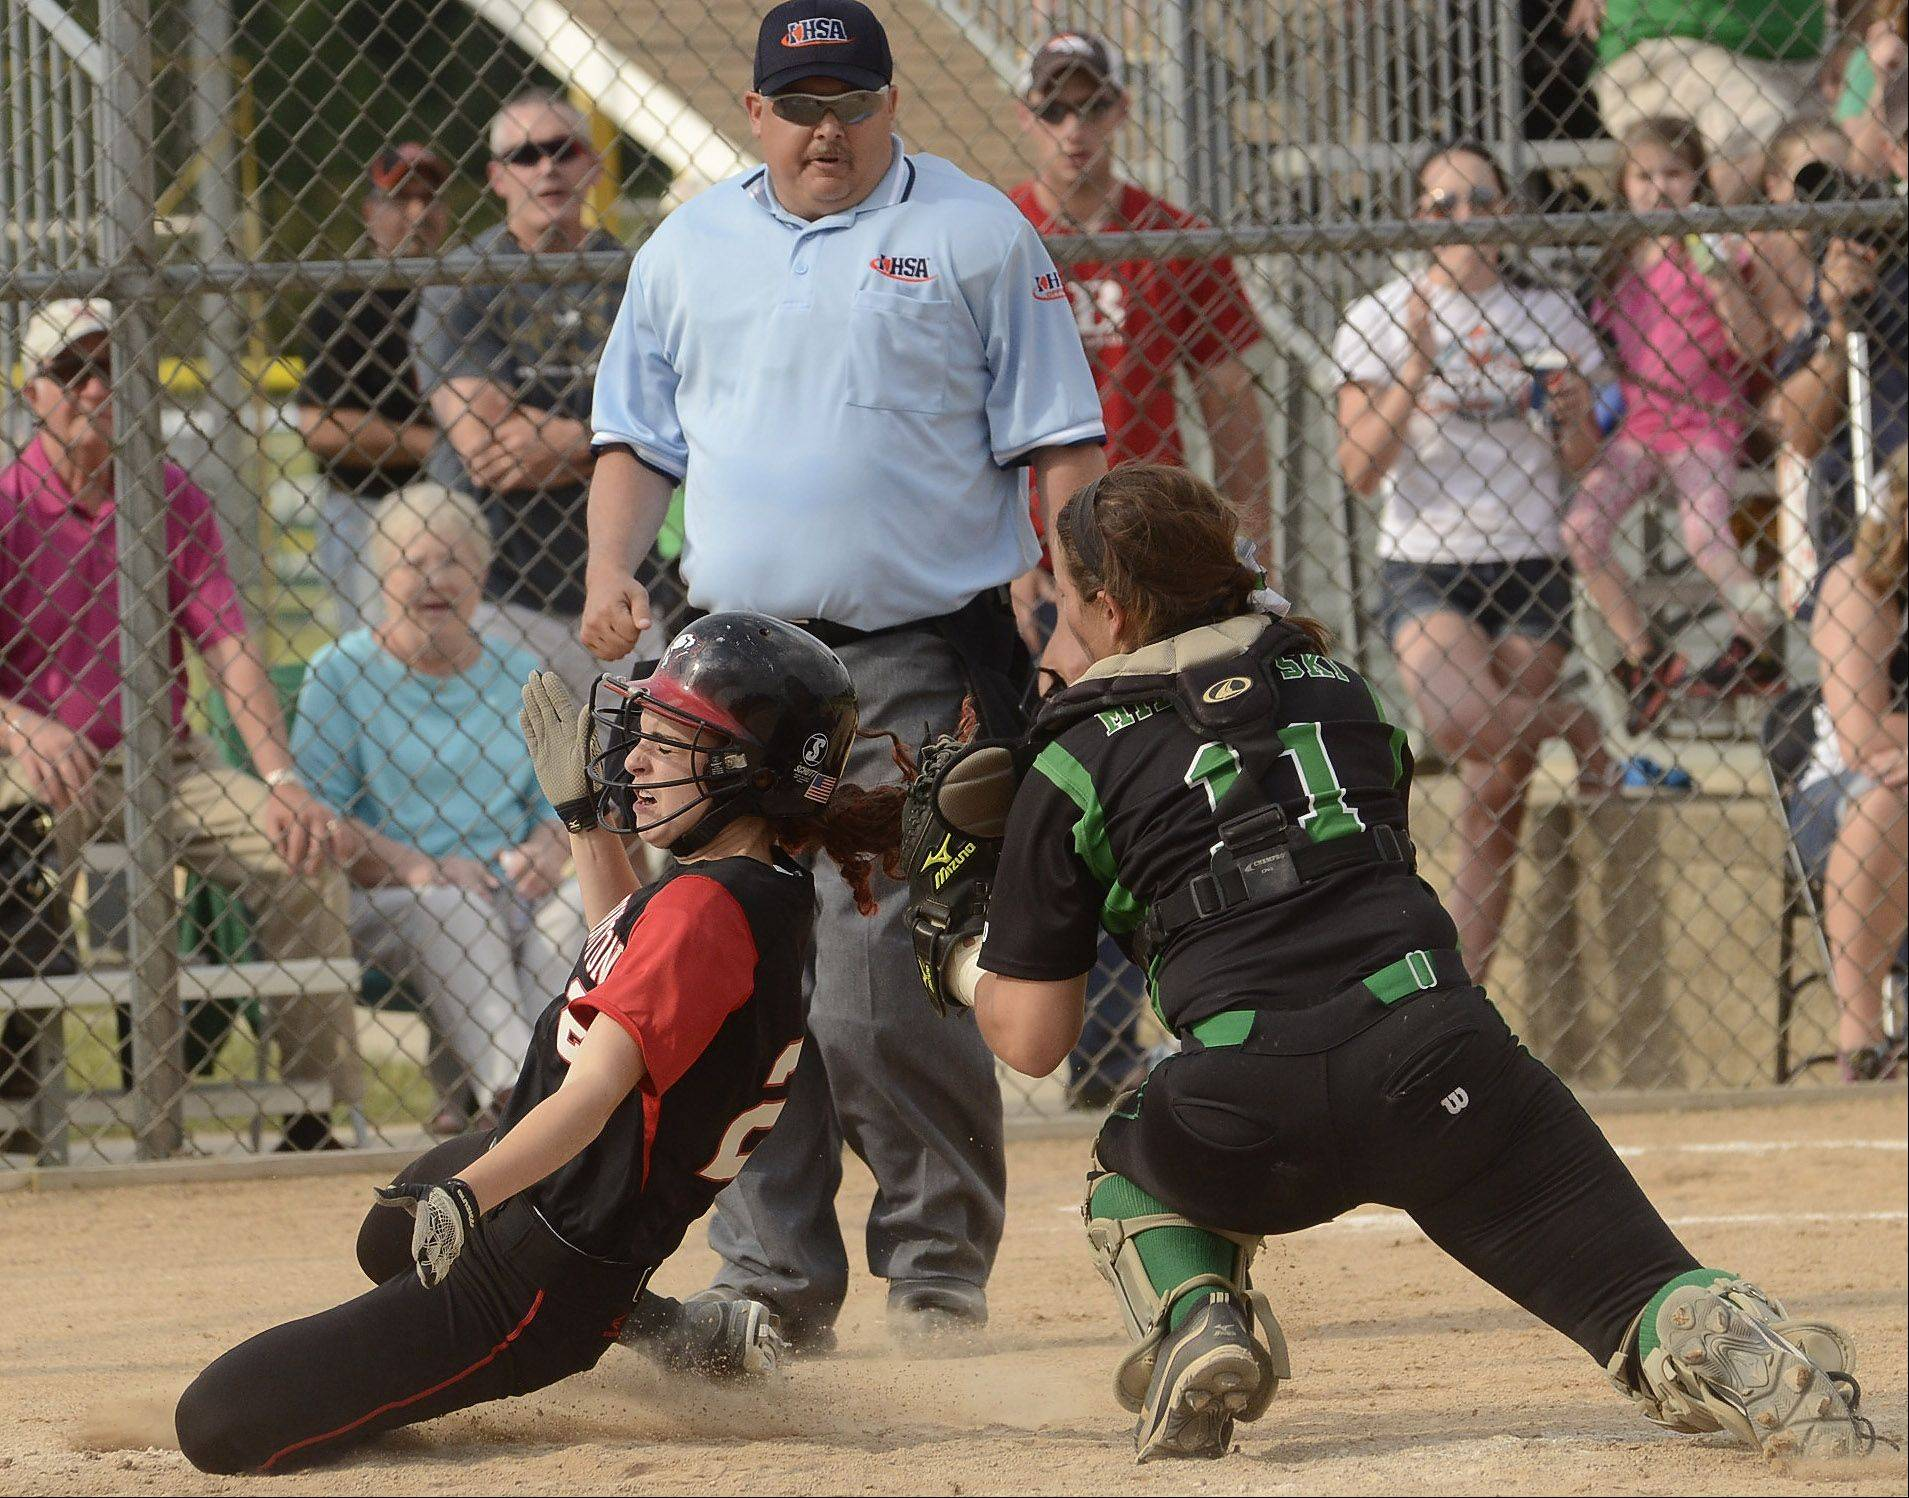 Barrington's Jenna Privatsky is tagged out at the plate by York catcher Sarah Milkowski in the top half of the seventh inning during the Class 4A softball third-place game between Barrington and York.